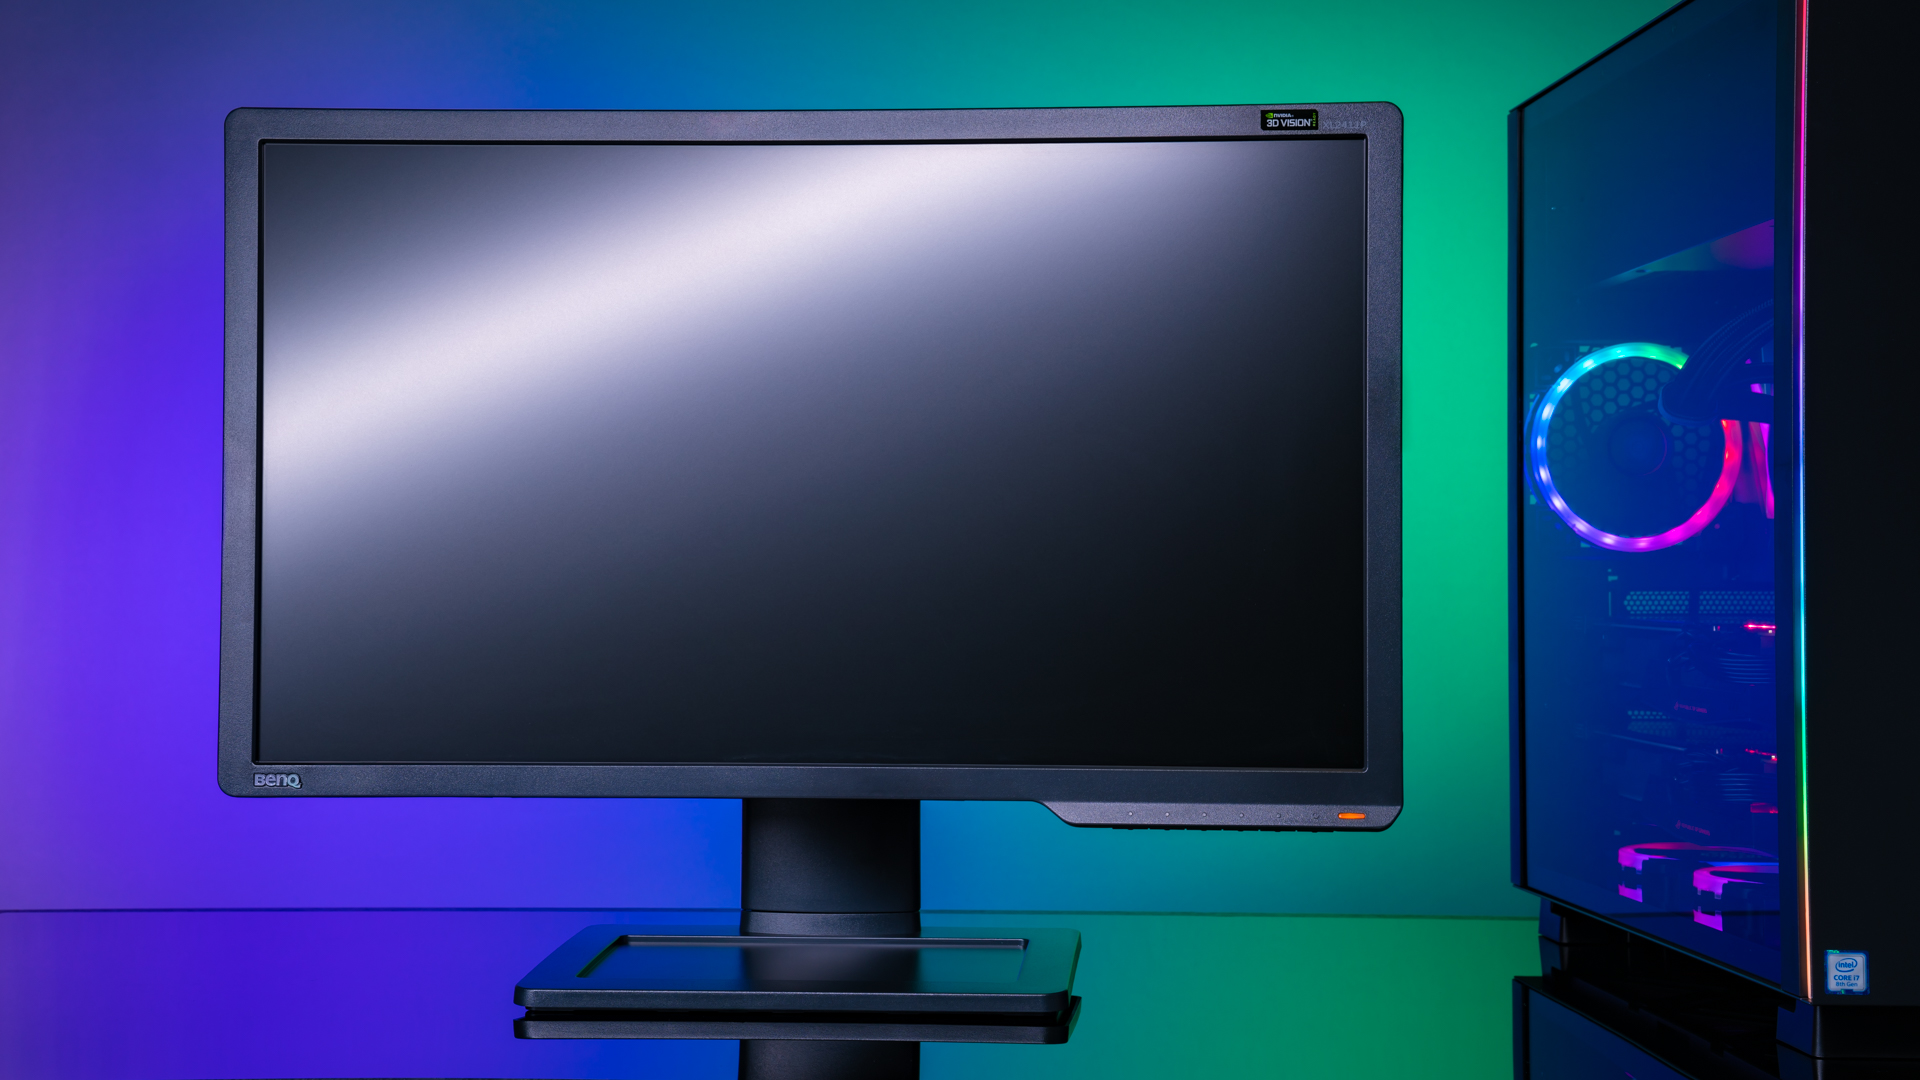 BenQ's XL2411P Monitor Offers High Performance with No